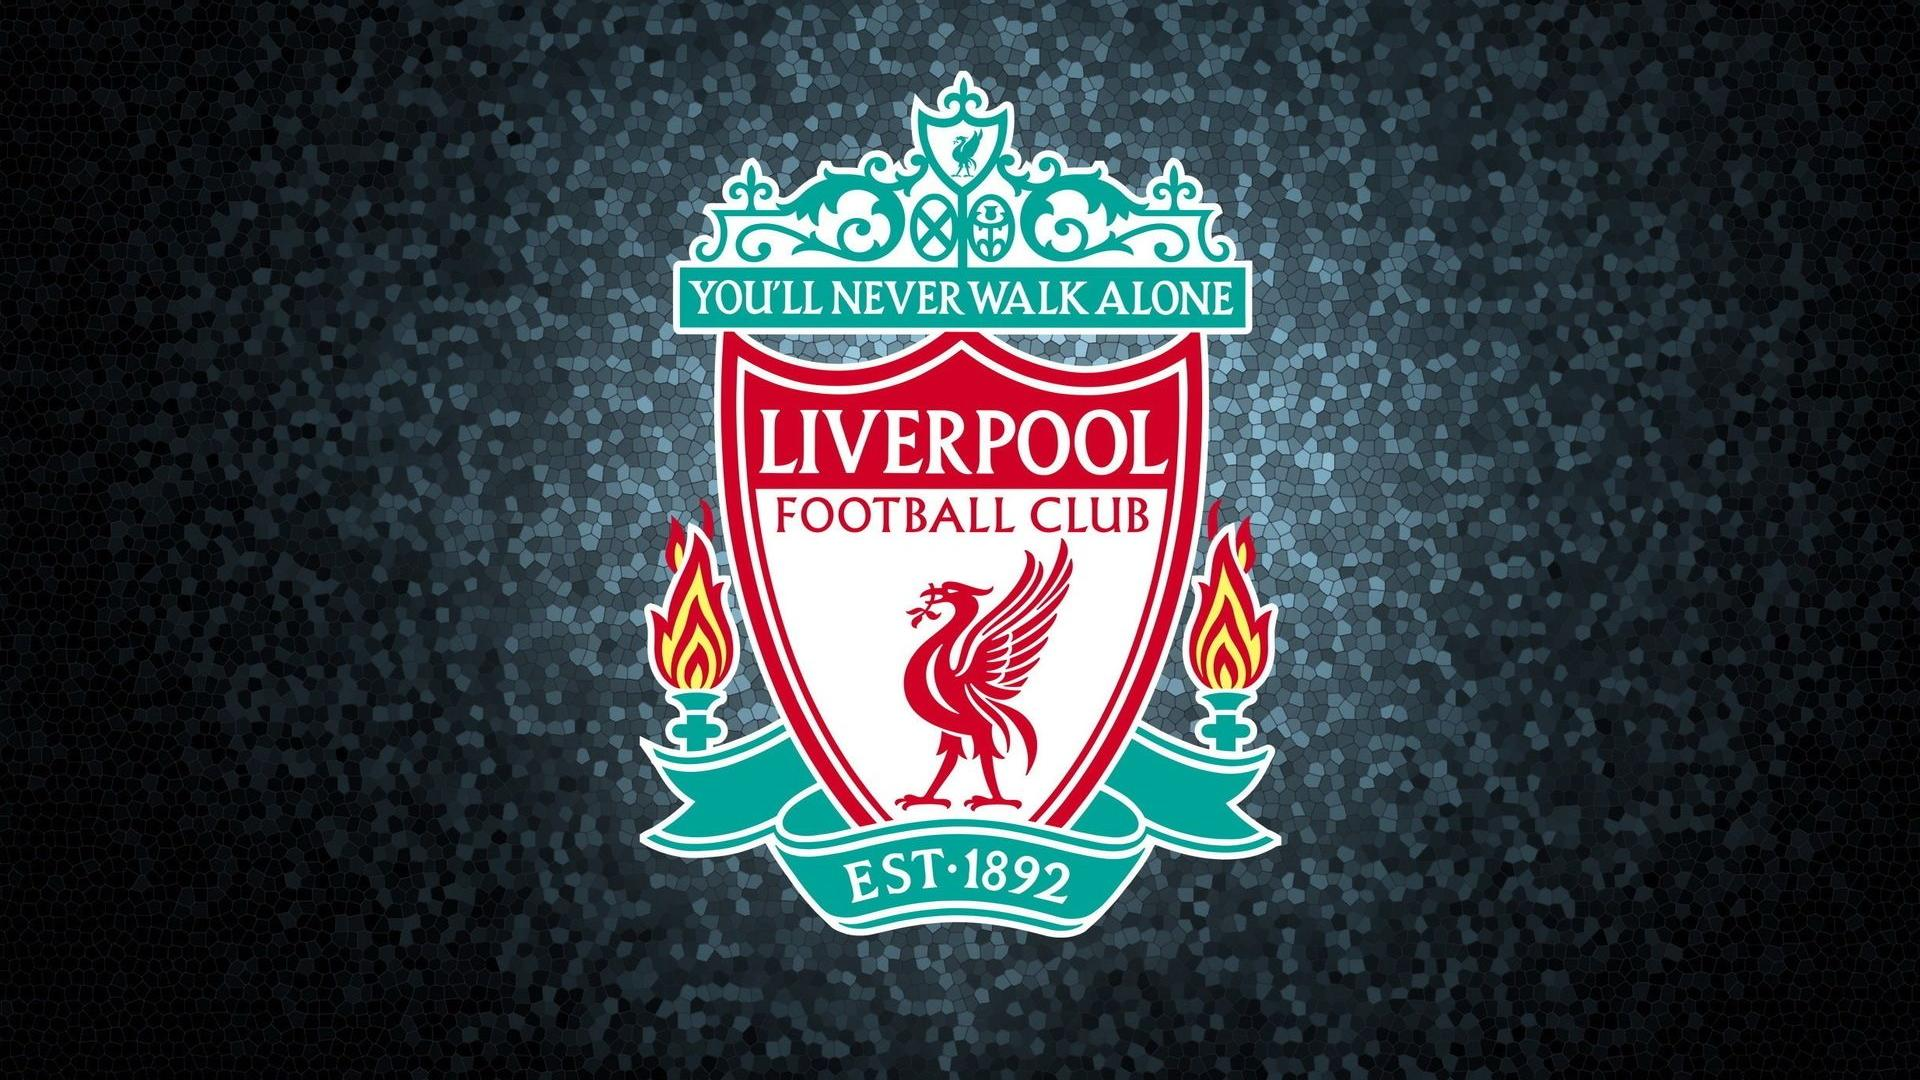 HD Wallpapers Football Clubs